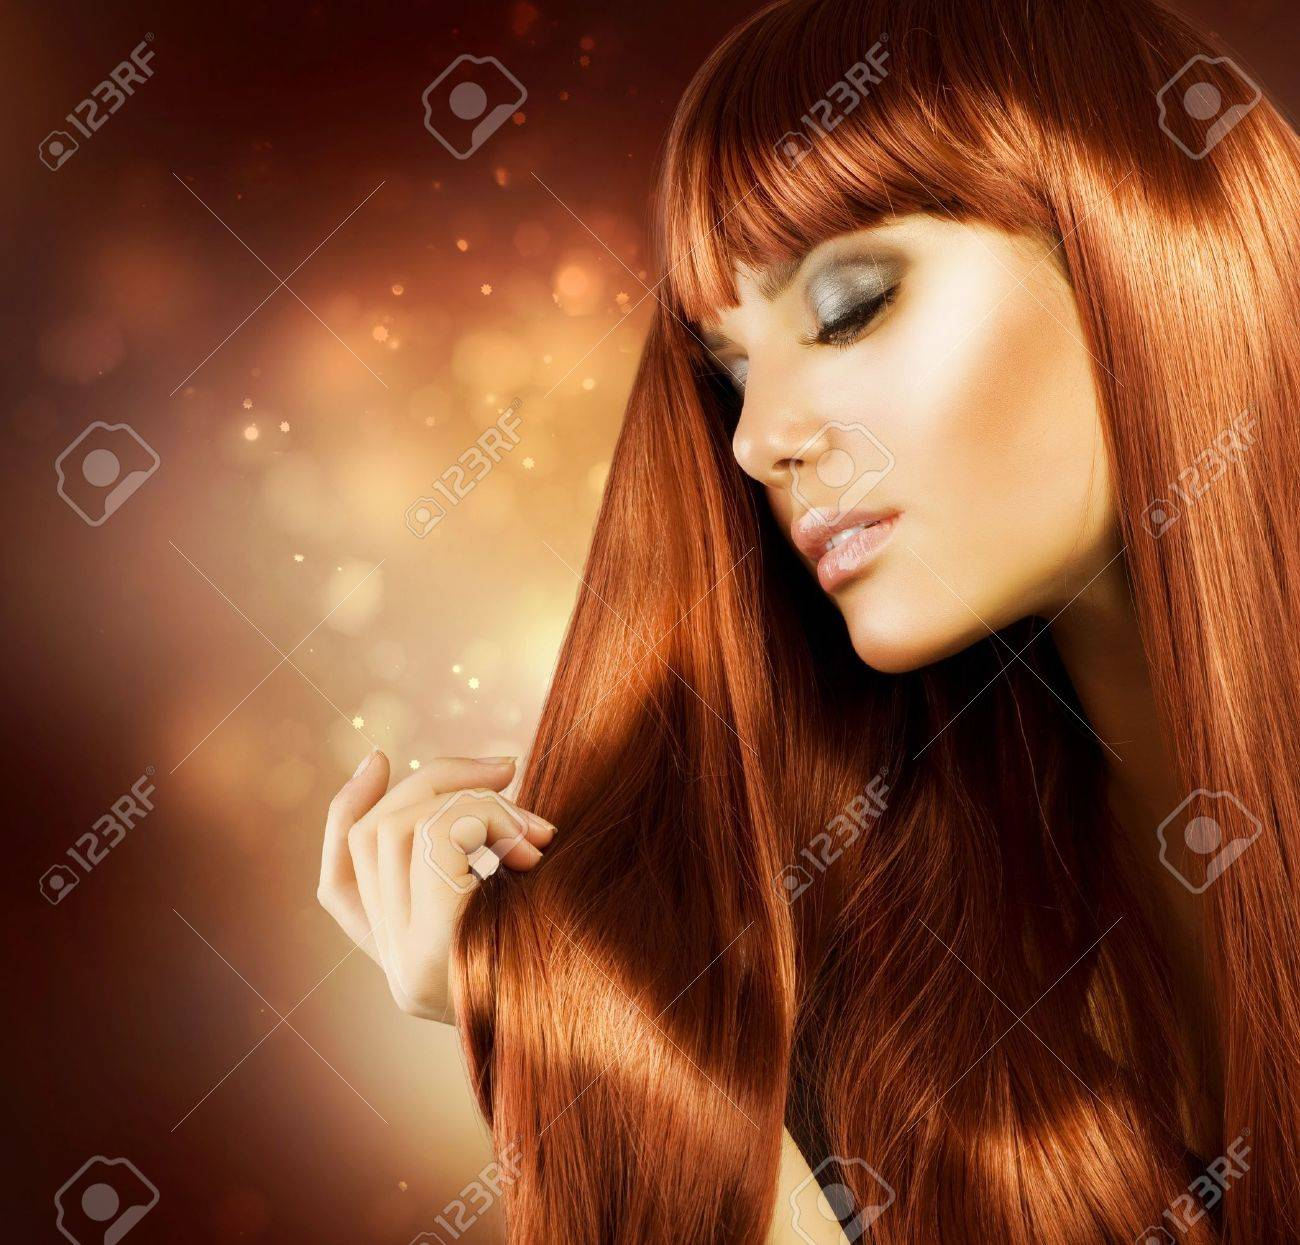 Healthy Hair Stock Photo - 11753184